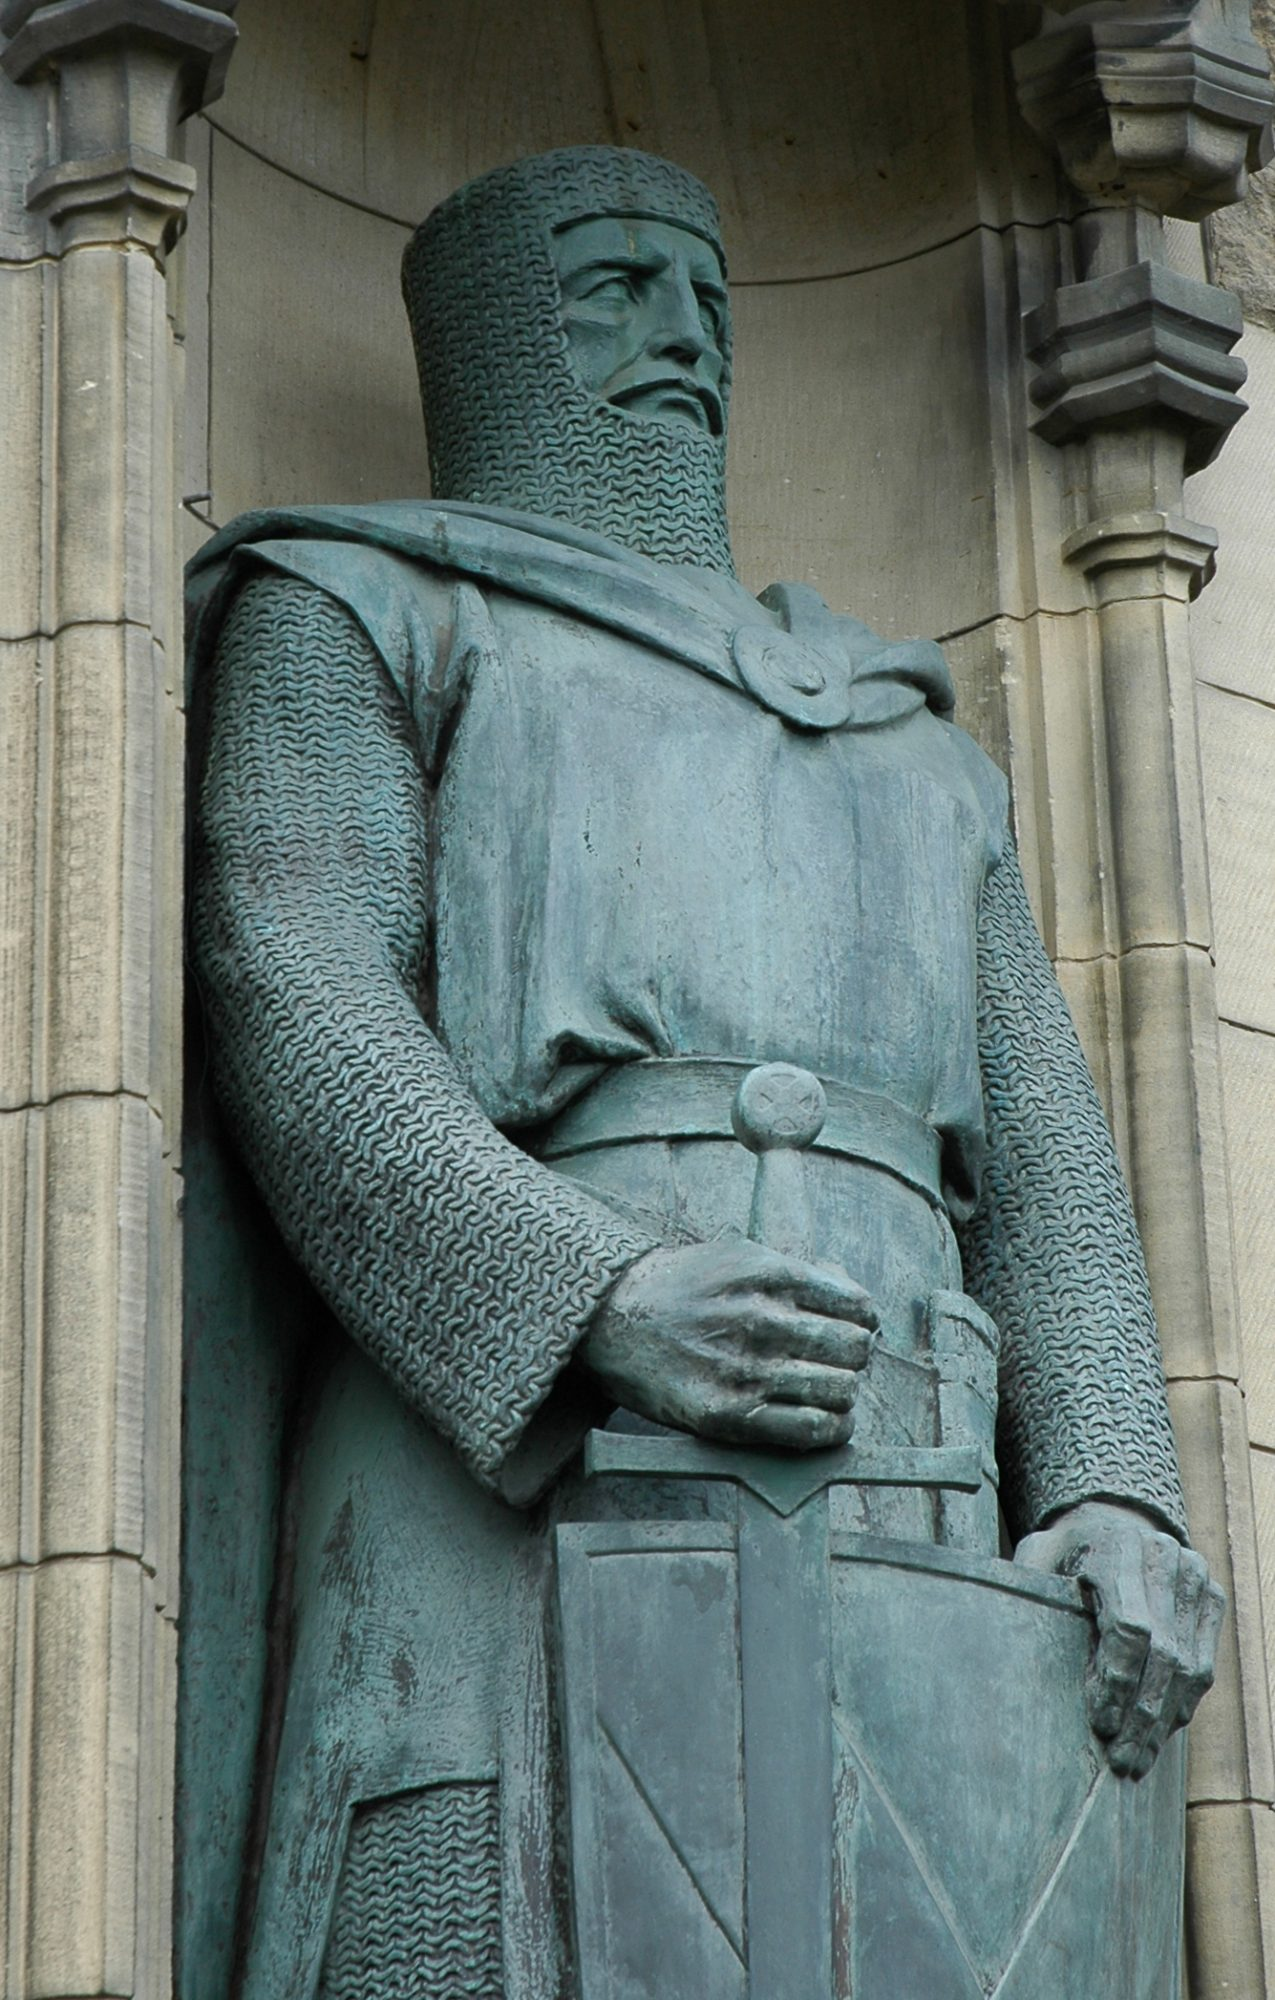 Statue de William Wallace au château d'Édimbourg